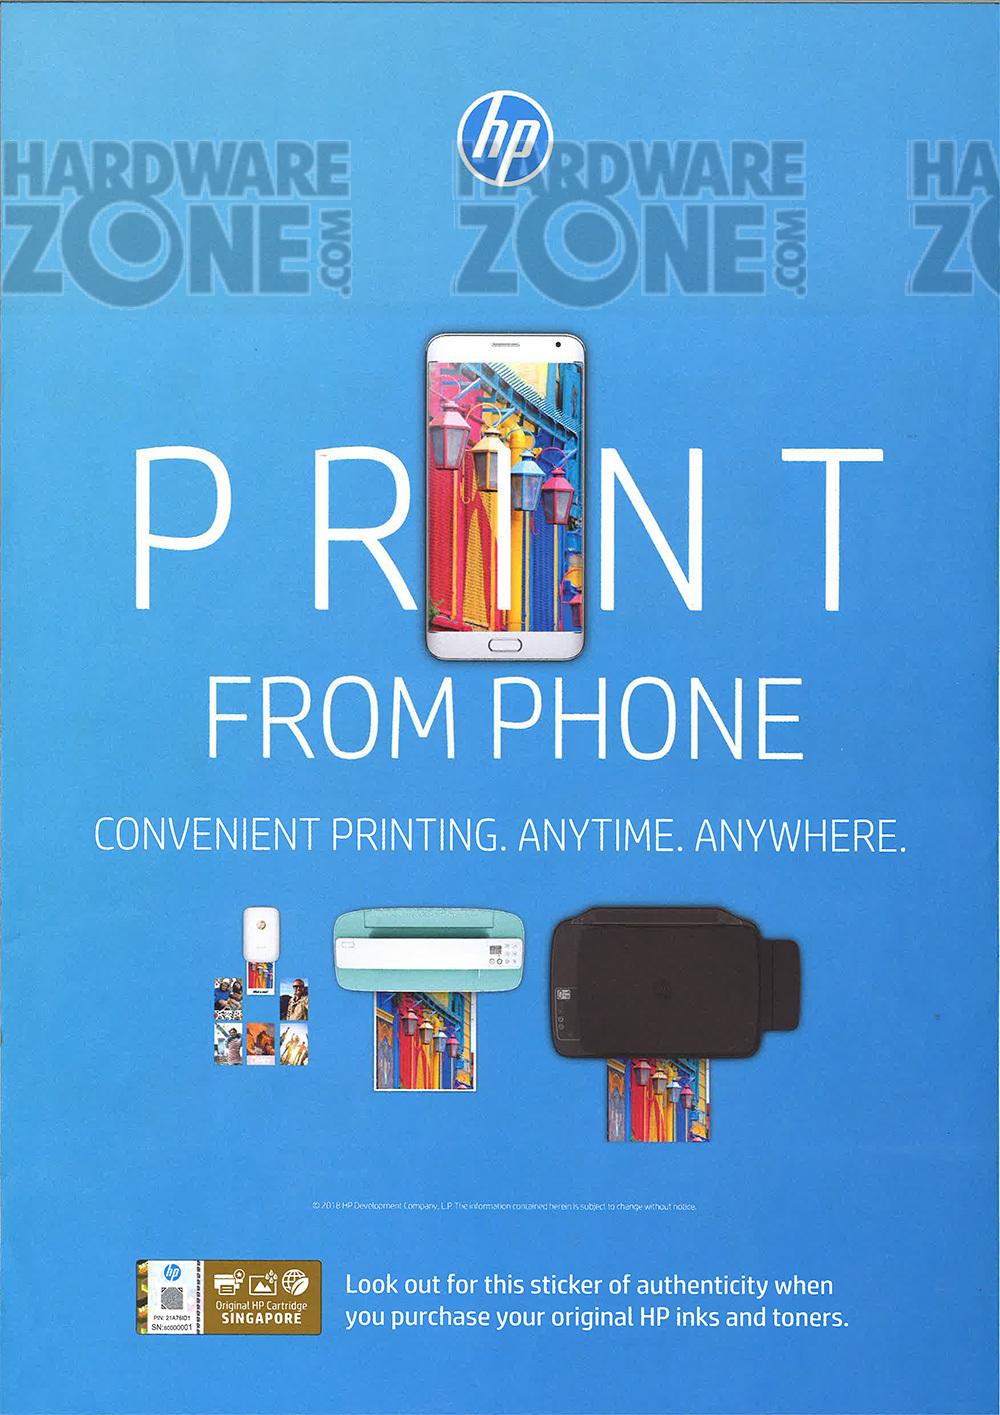 HP printers - page 4 Brochures from SITEX 2018 Singapore on